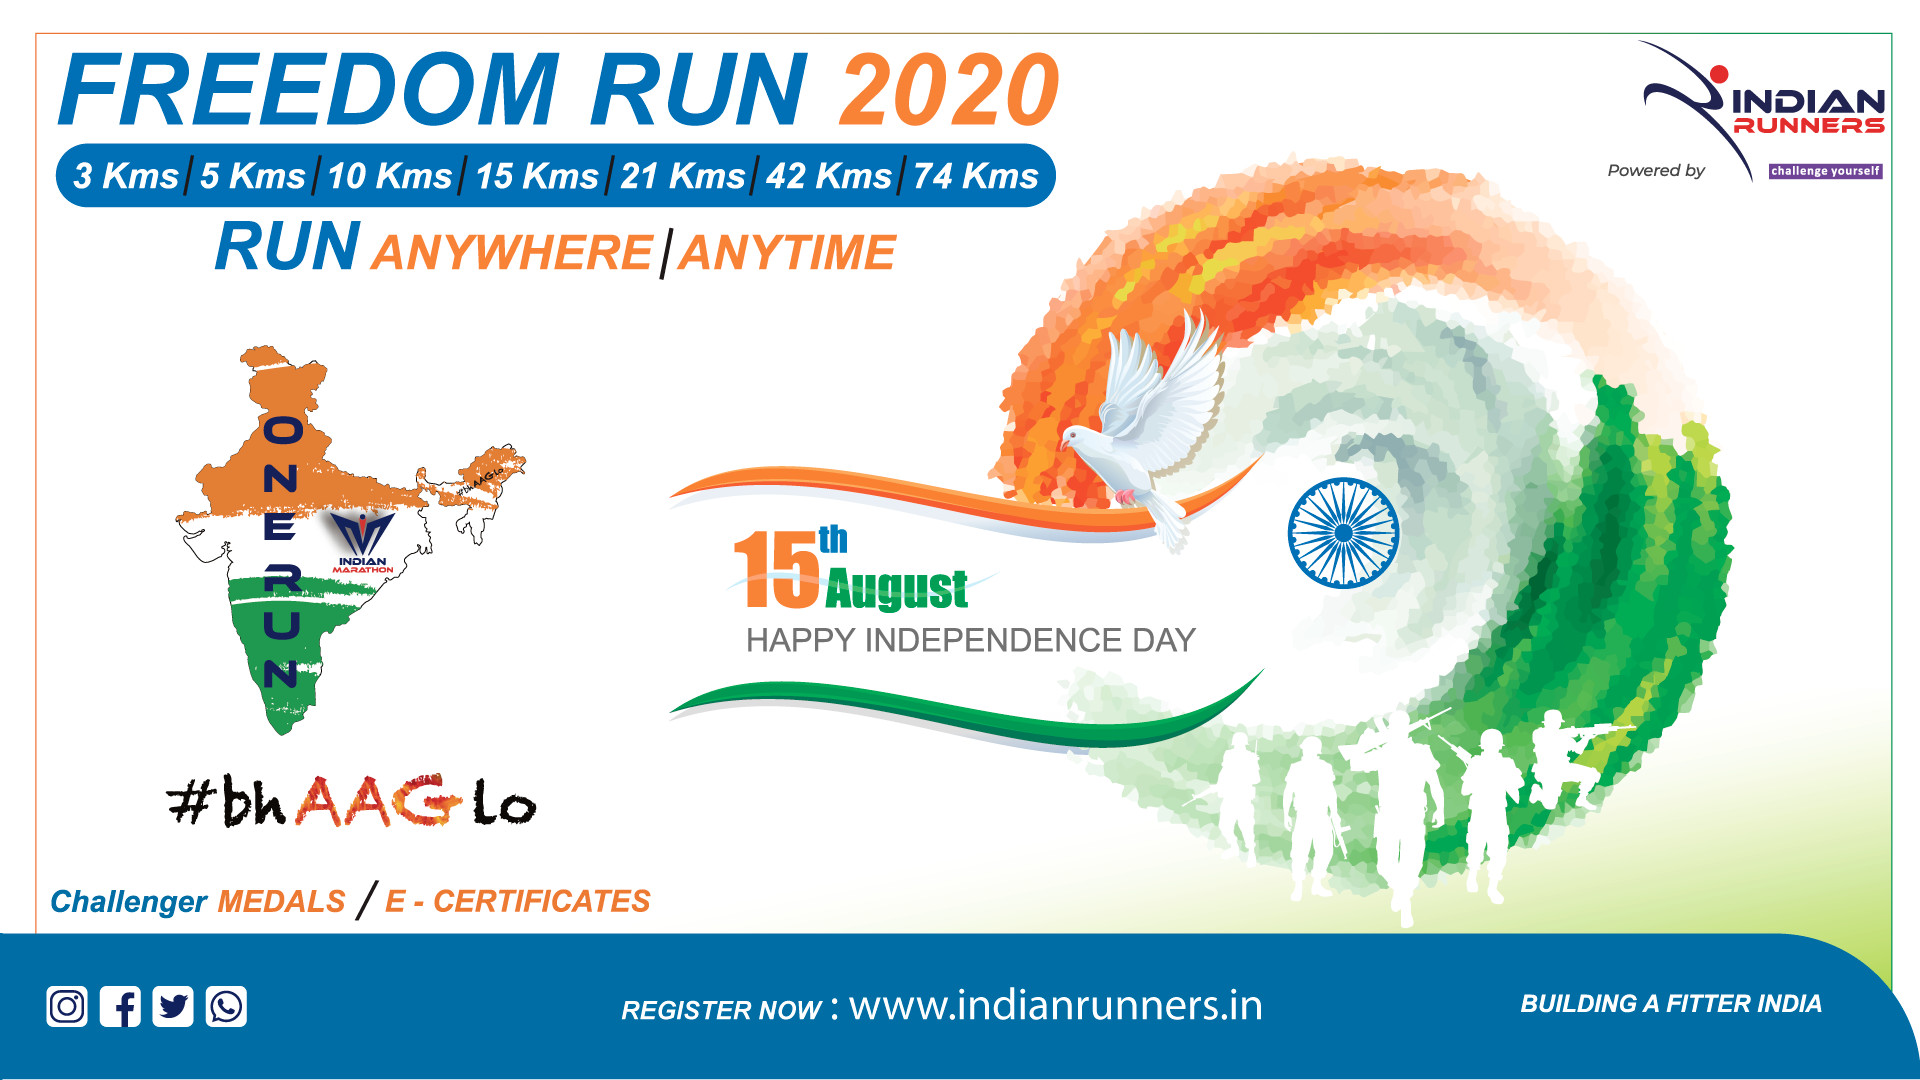 Freedom Run image